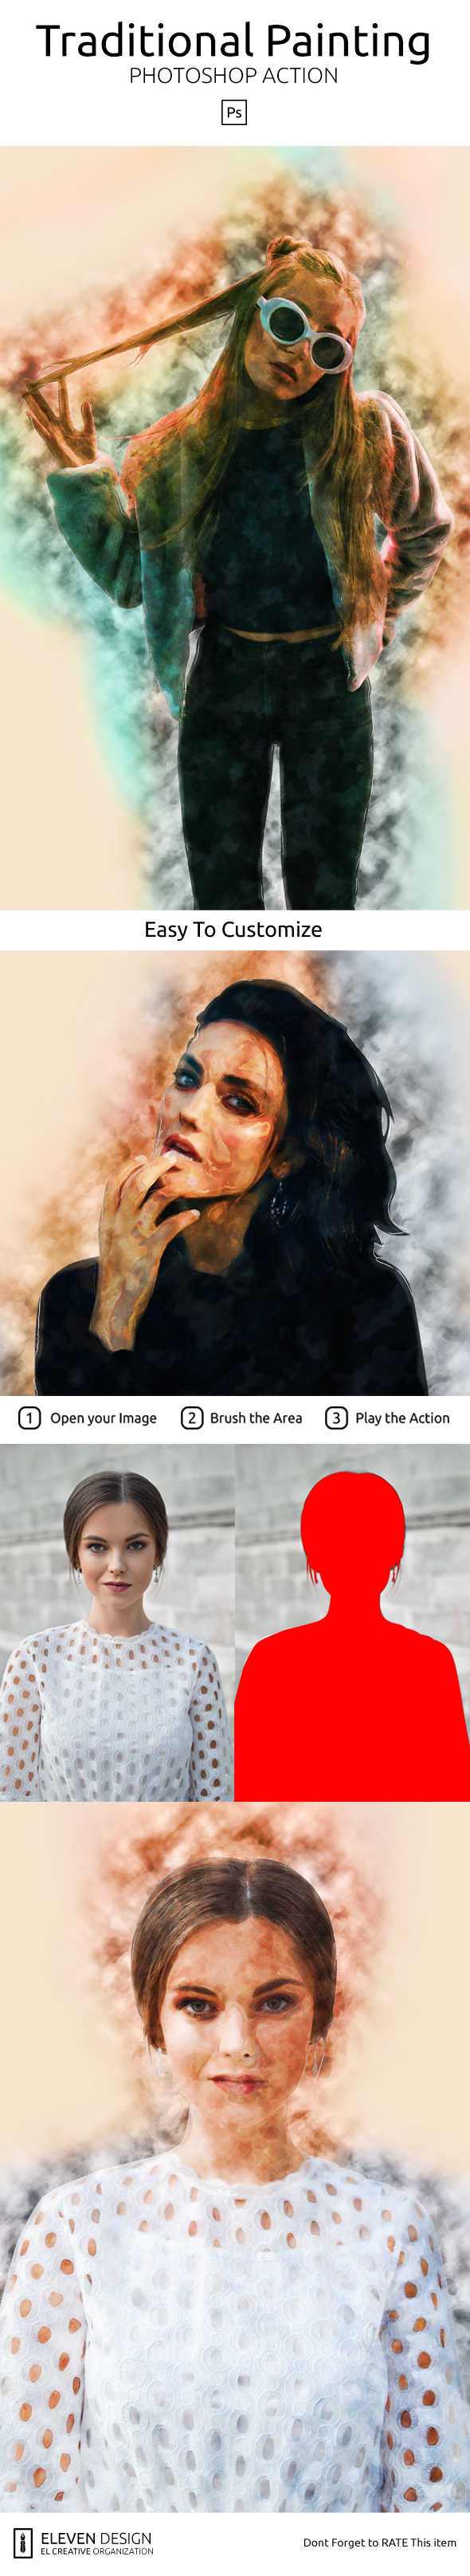 GraphicRiver Traditinal Painting Photoshop Action 20988239